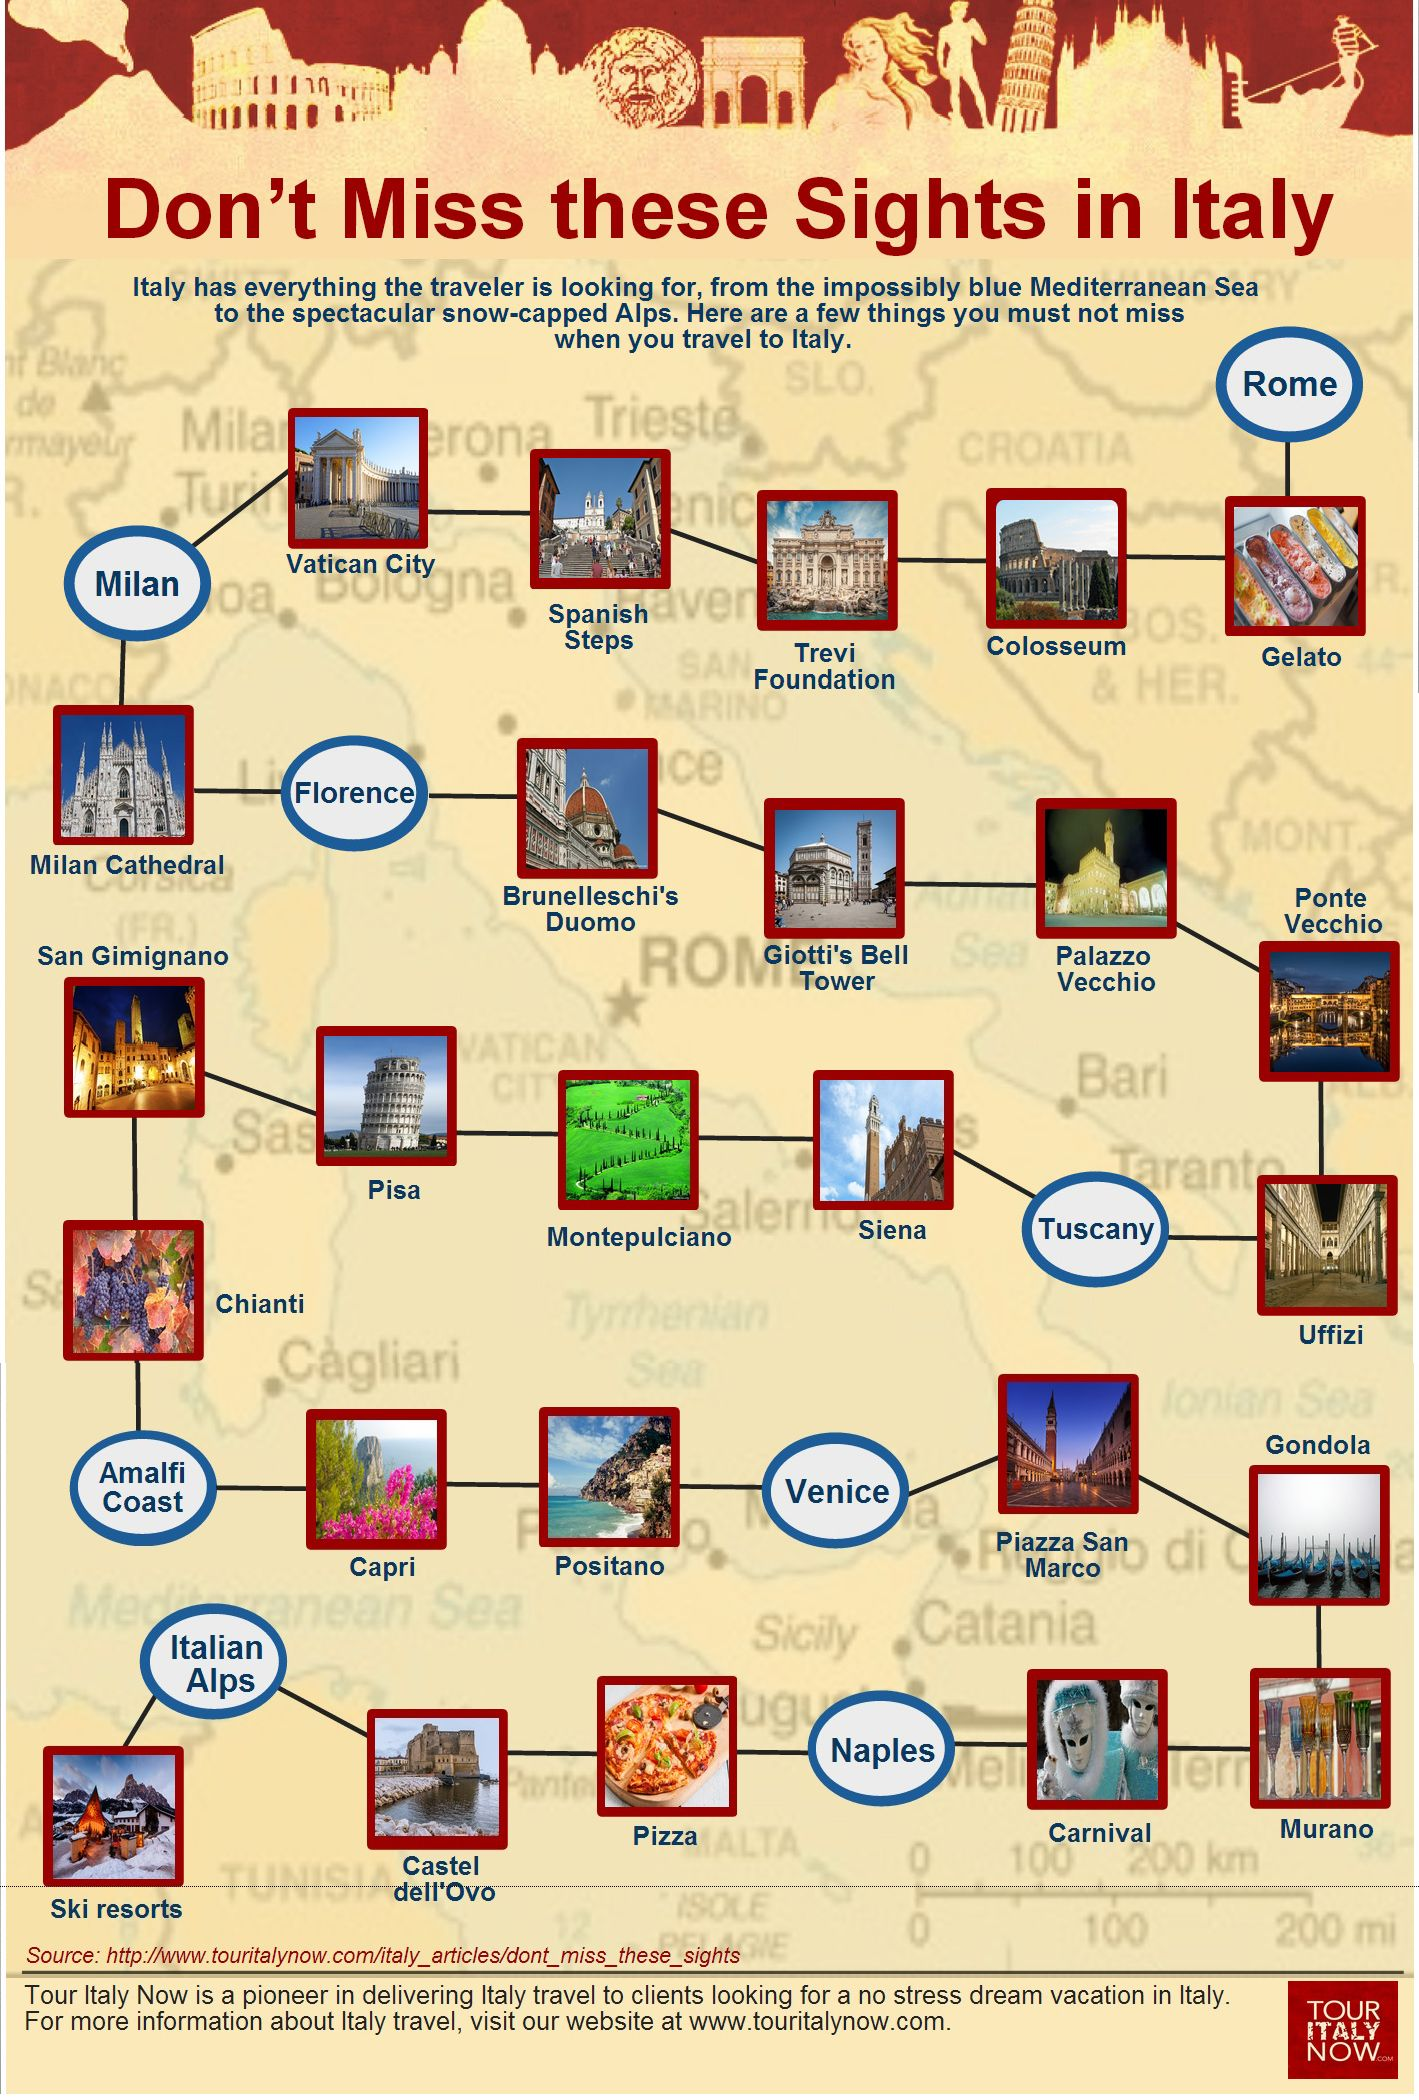 From major cities down to towns and villages, there are tons of attractions in Italy. Use this infographic as your guide when you travel to Italy. What are the top spots on your bucket list? #Italytravel #Italyvacation